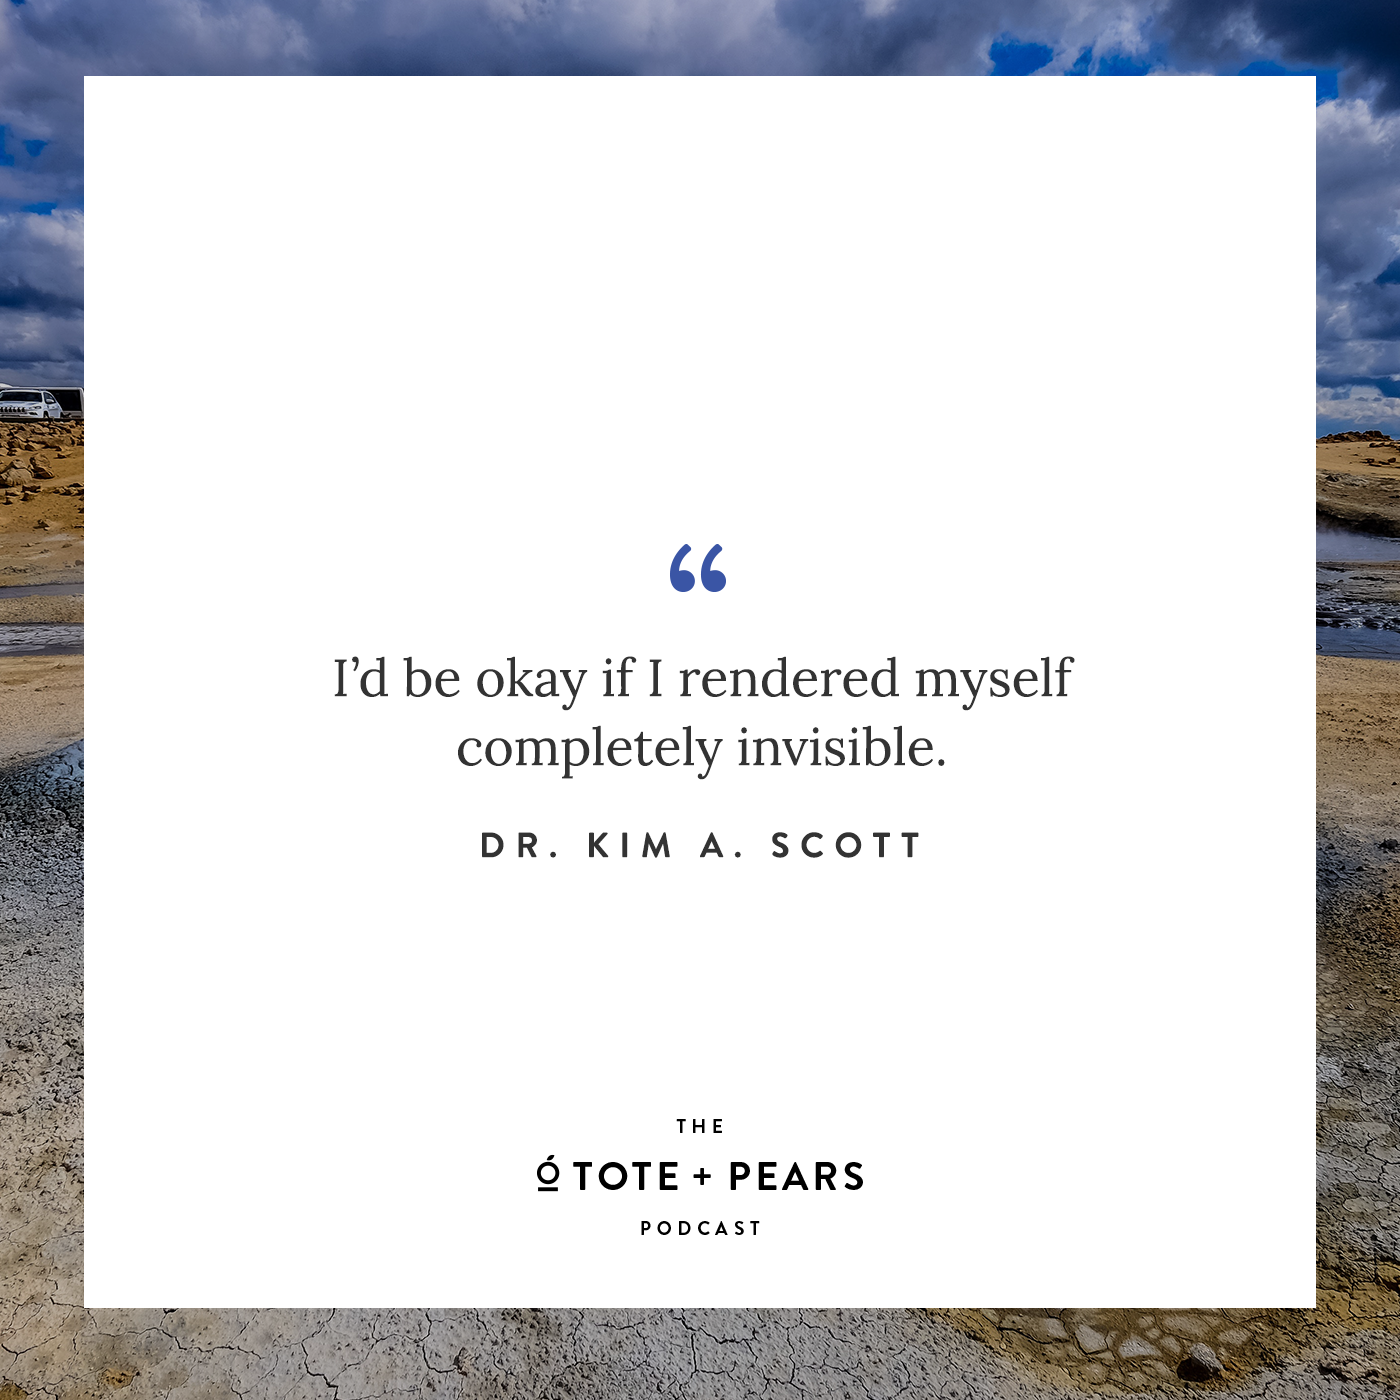 Ep 13 Tote + Pears Podcast Dr. Kim A. Scott